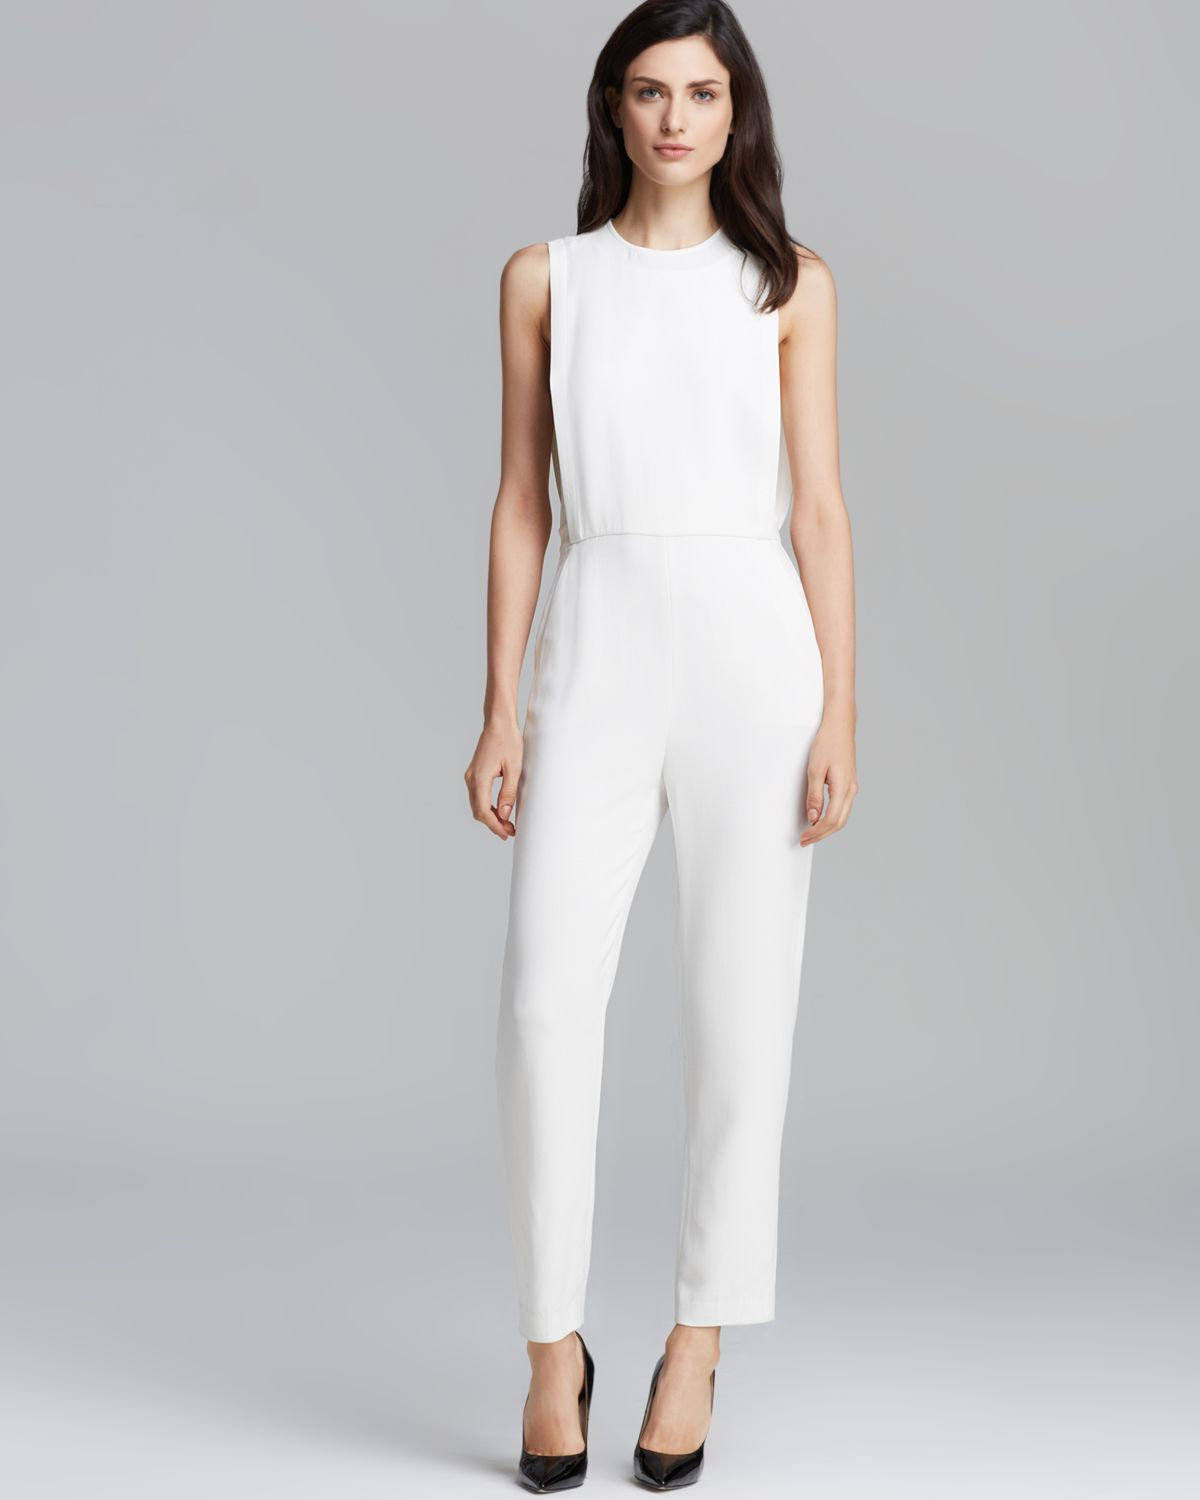 Theory Jumpsuit Remaline Spiaggia in White | Lyst